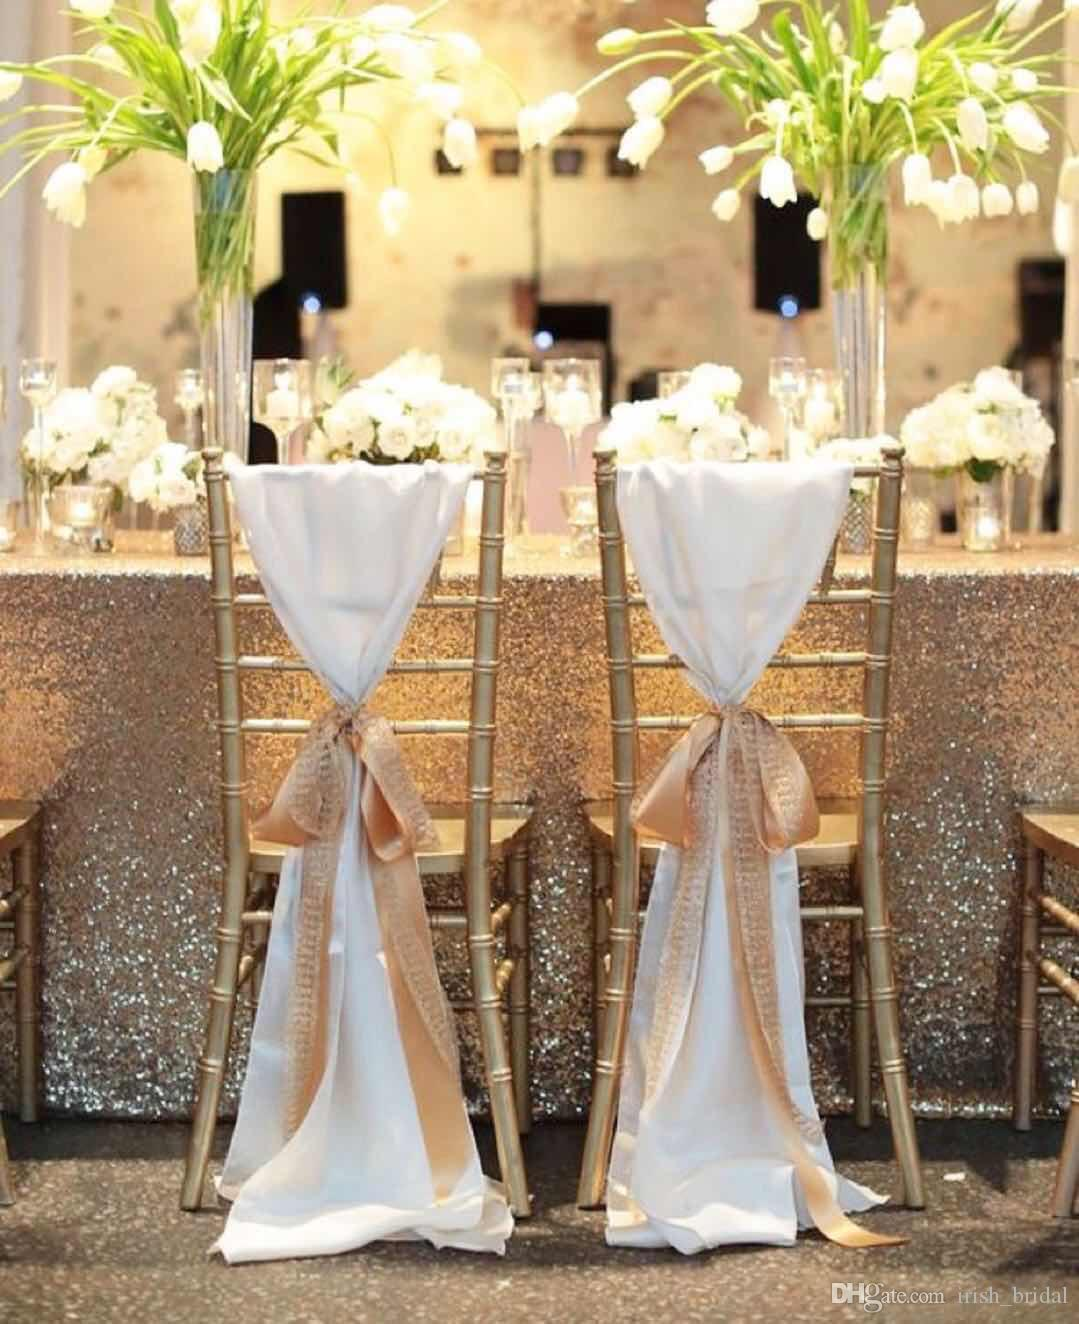 New Coming White With Ribbon Ronamtic Mediterranean Classic Beautiful Custom Made Wedding Supplies Wedding Events Chair Sash